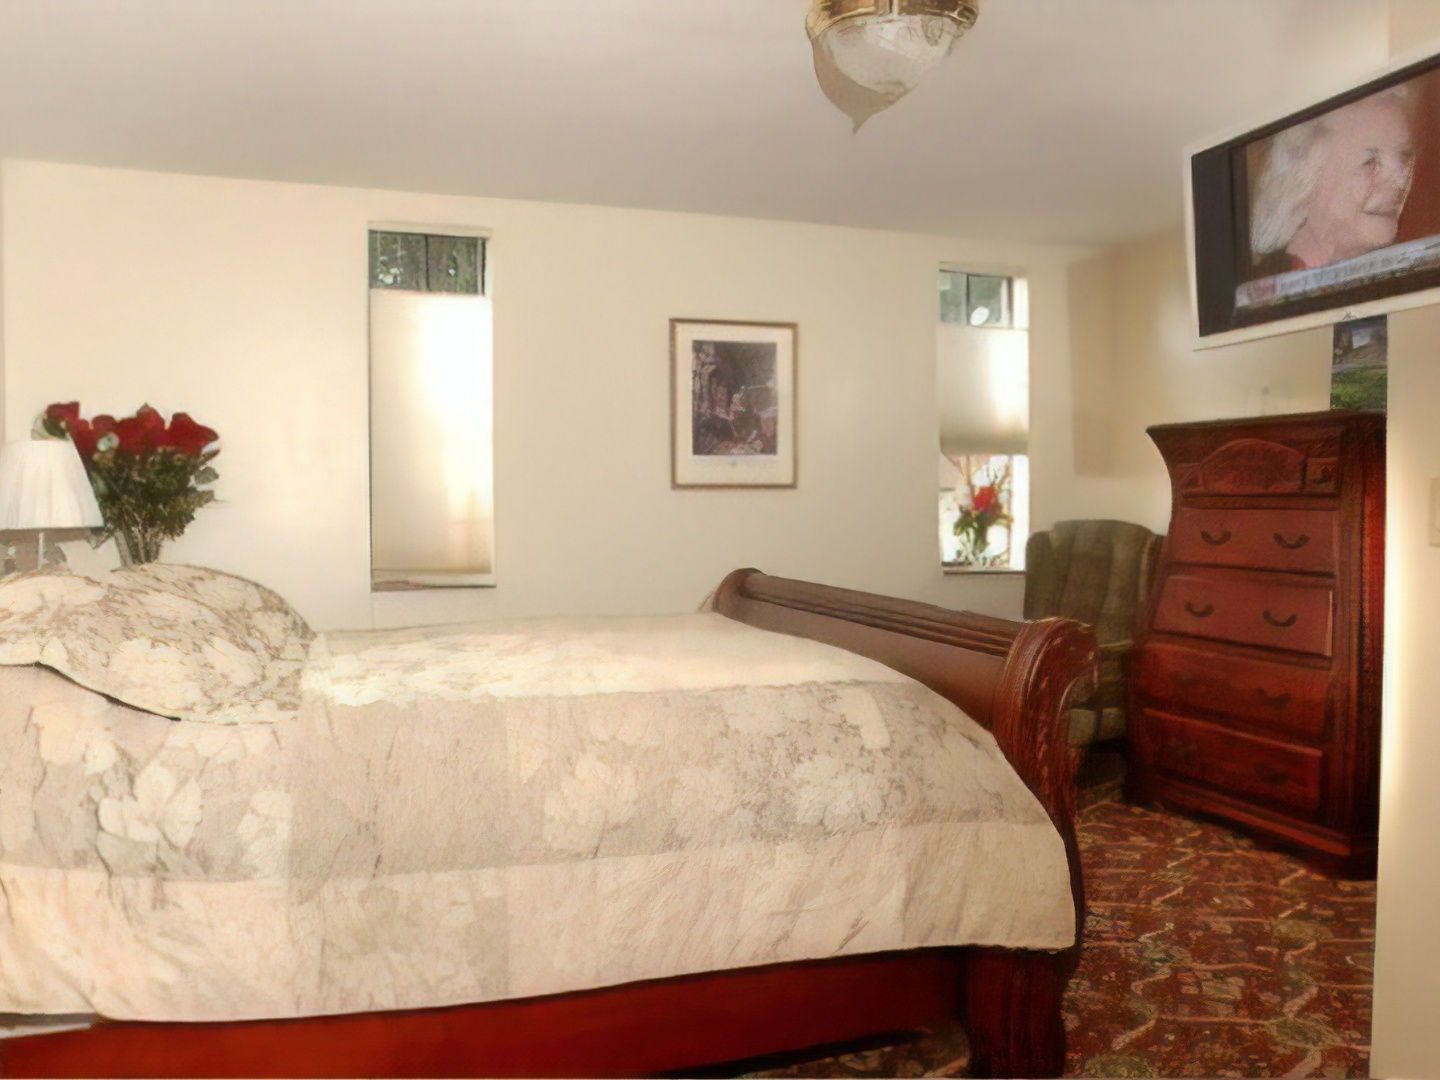 A bedroom with a large bed in a room at Fitzgerald's Irish Bed & Breakfast.